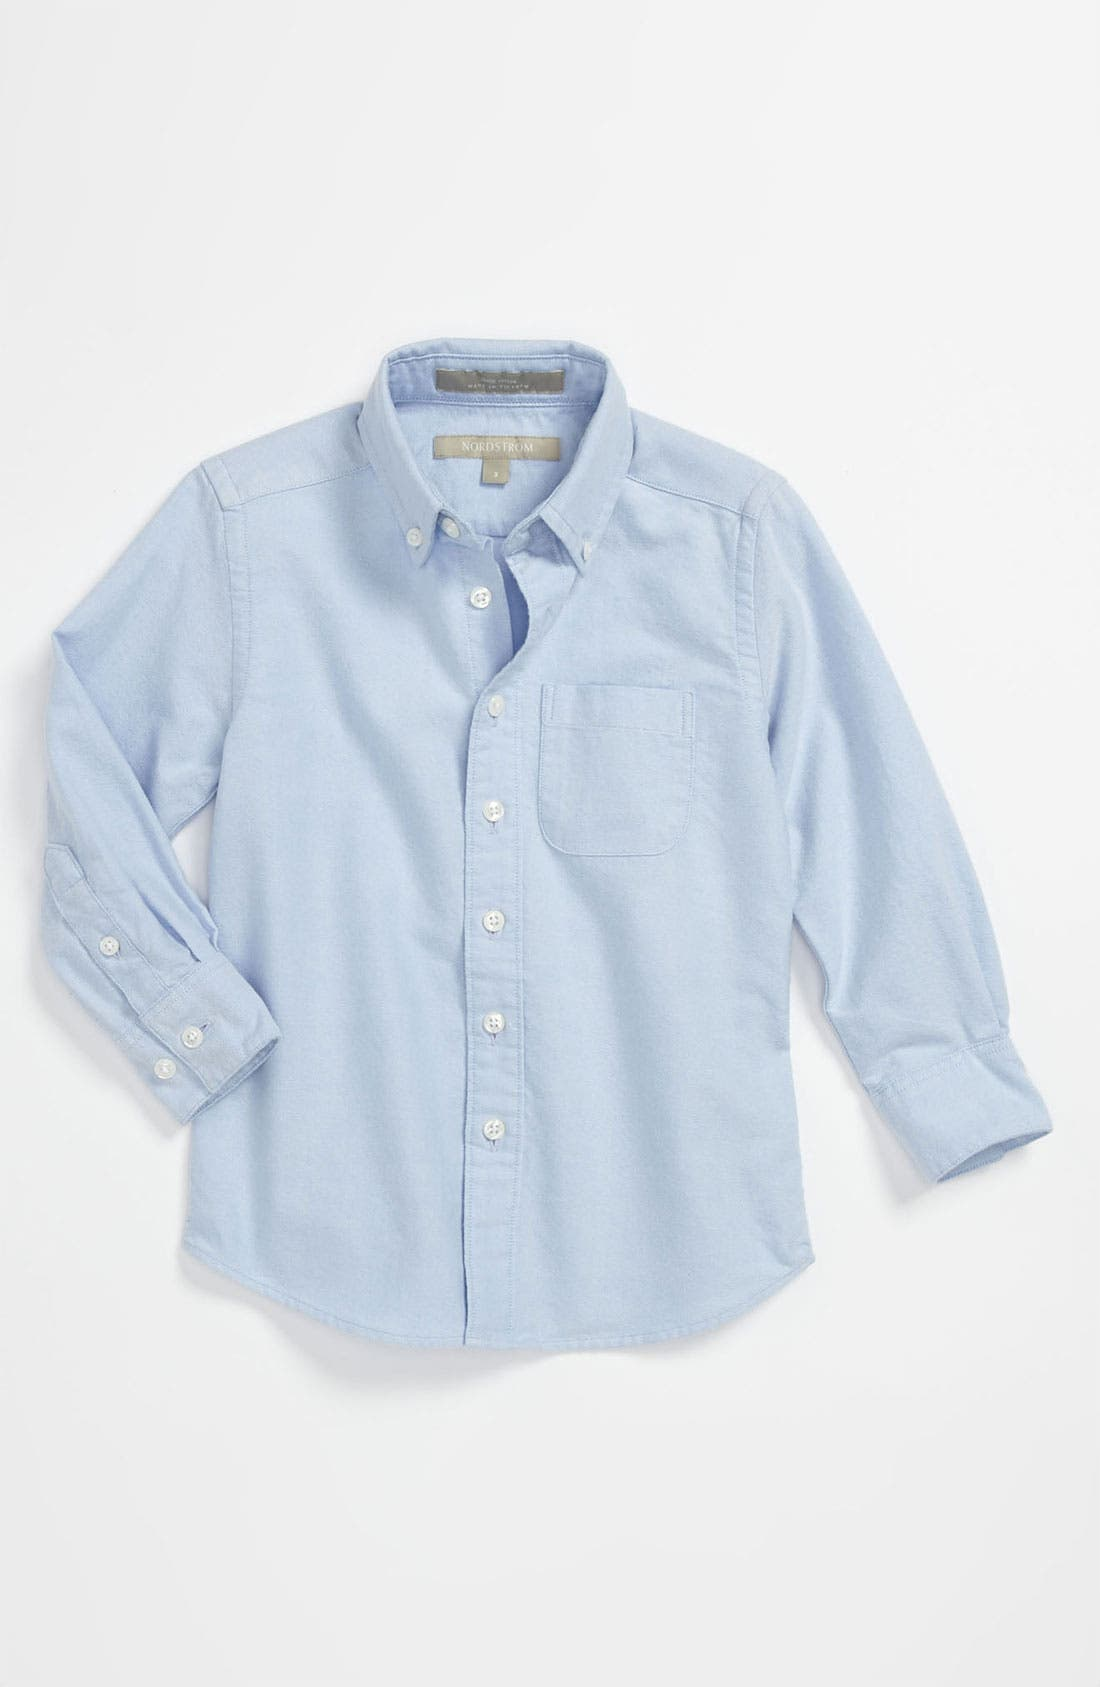 Alternate Image 1 Selected - Nordstrom 'Michael' Oxford Woven Shirt (Toddler)